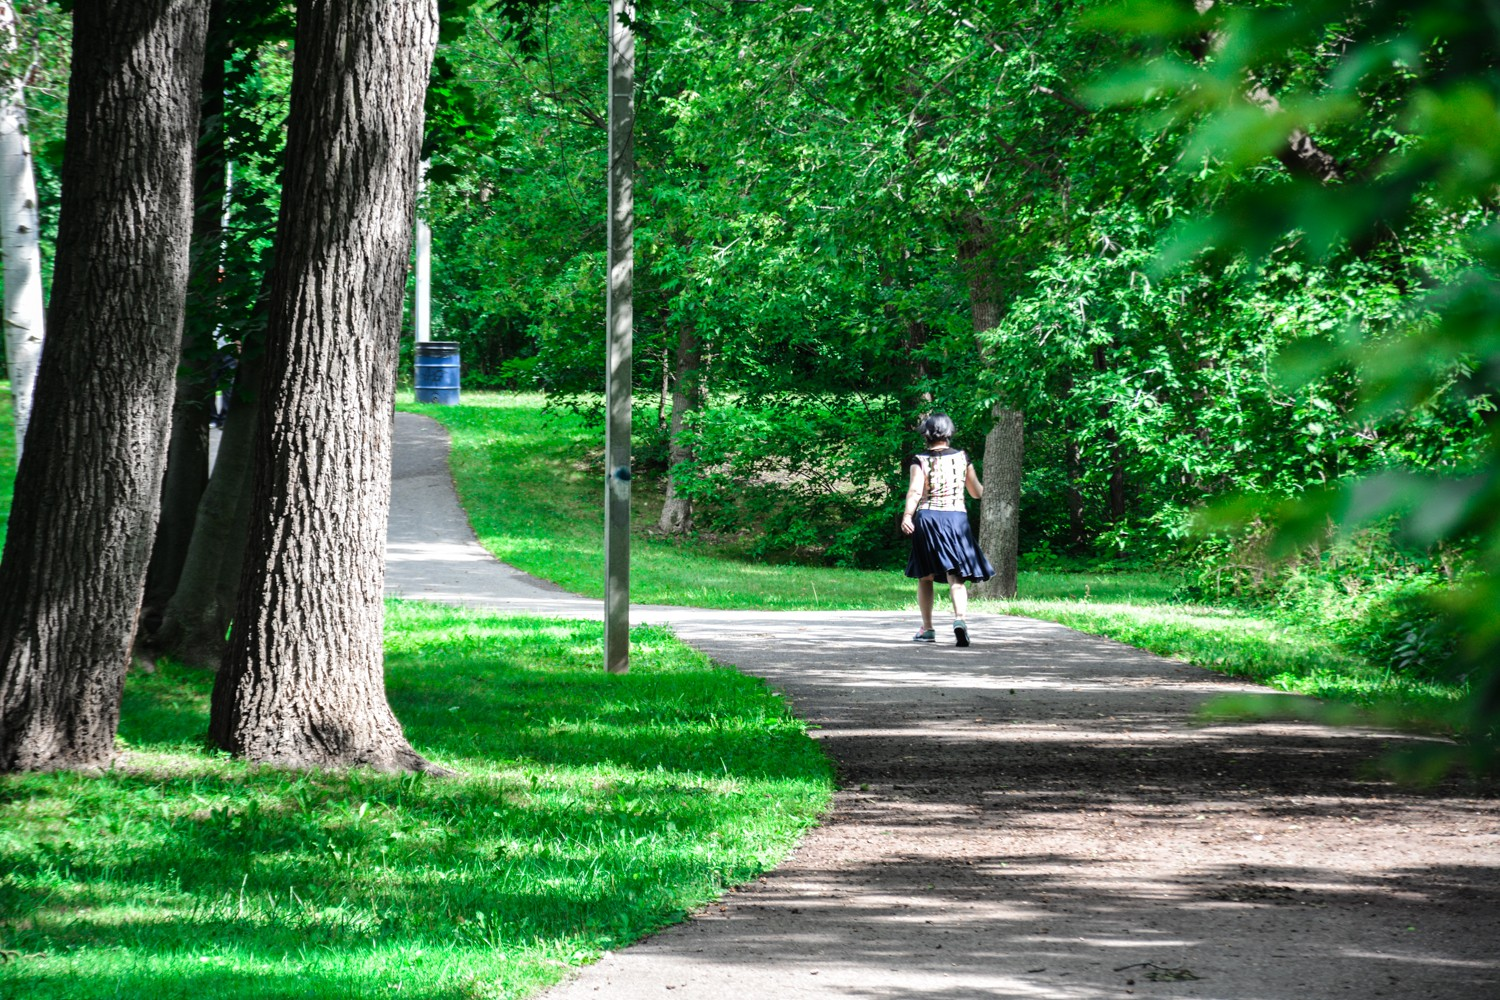 Provincial changes will slash public parkland, Brampton and Mississauga warn